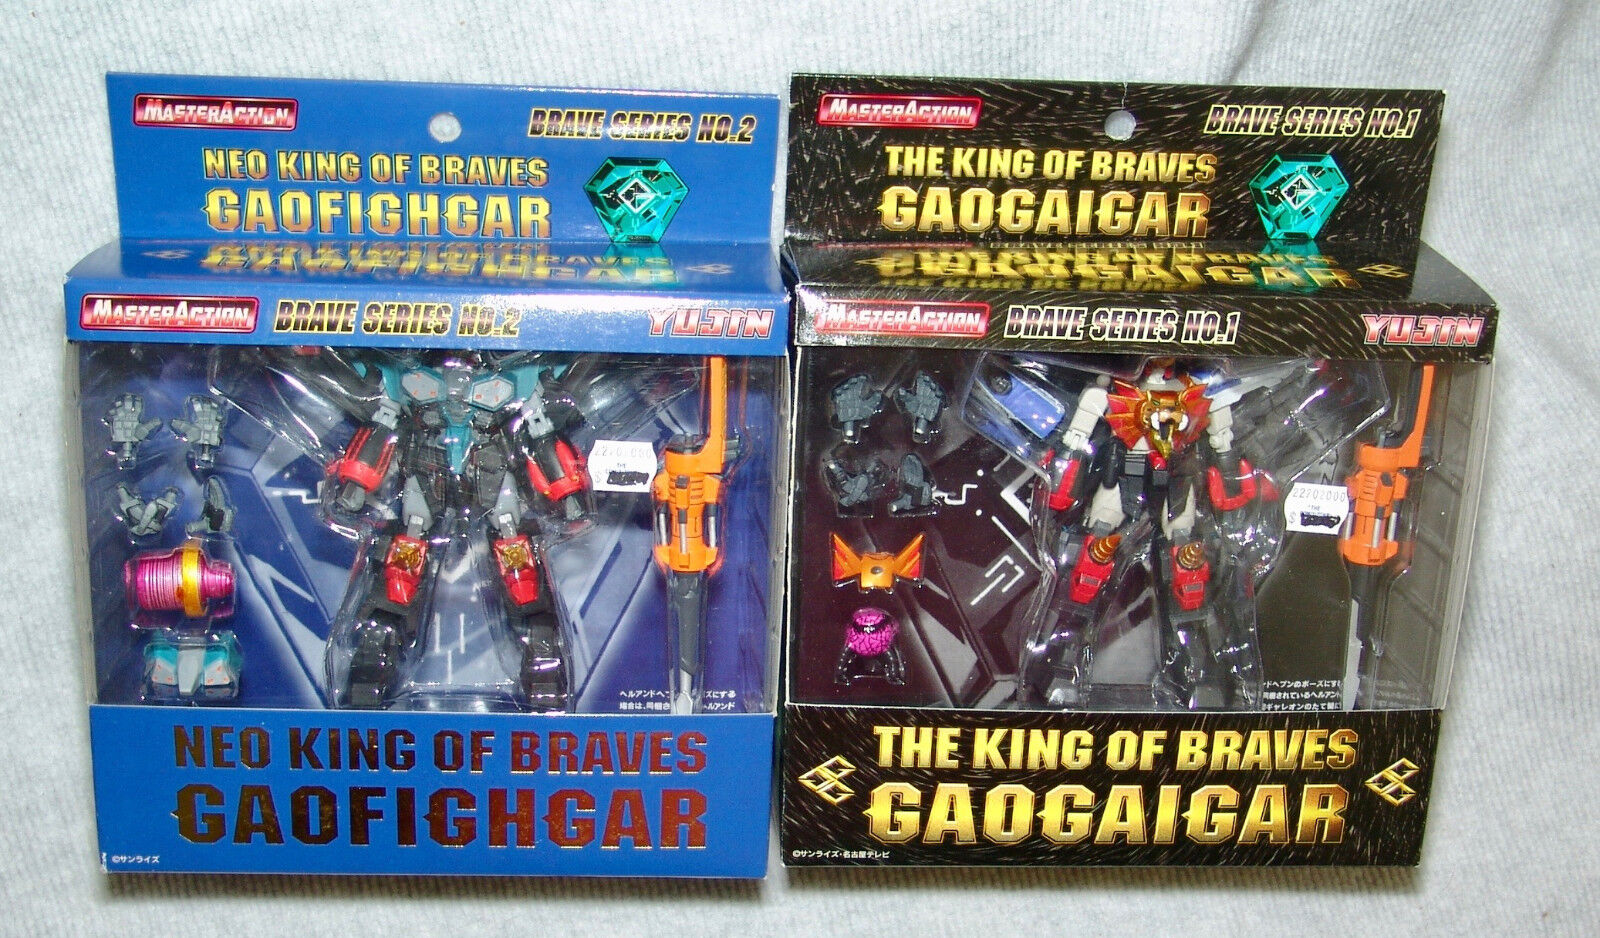 NEW YUJIN NEO KING OF BRAVES GAOGAIGAR SERIES  1 &  2 GAOFIGHGAR, USA SELLER